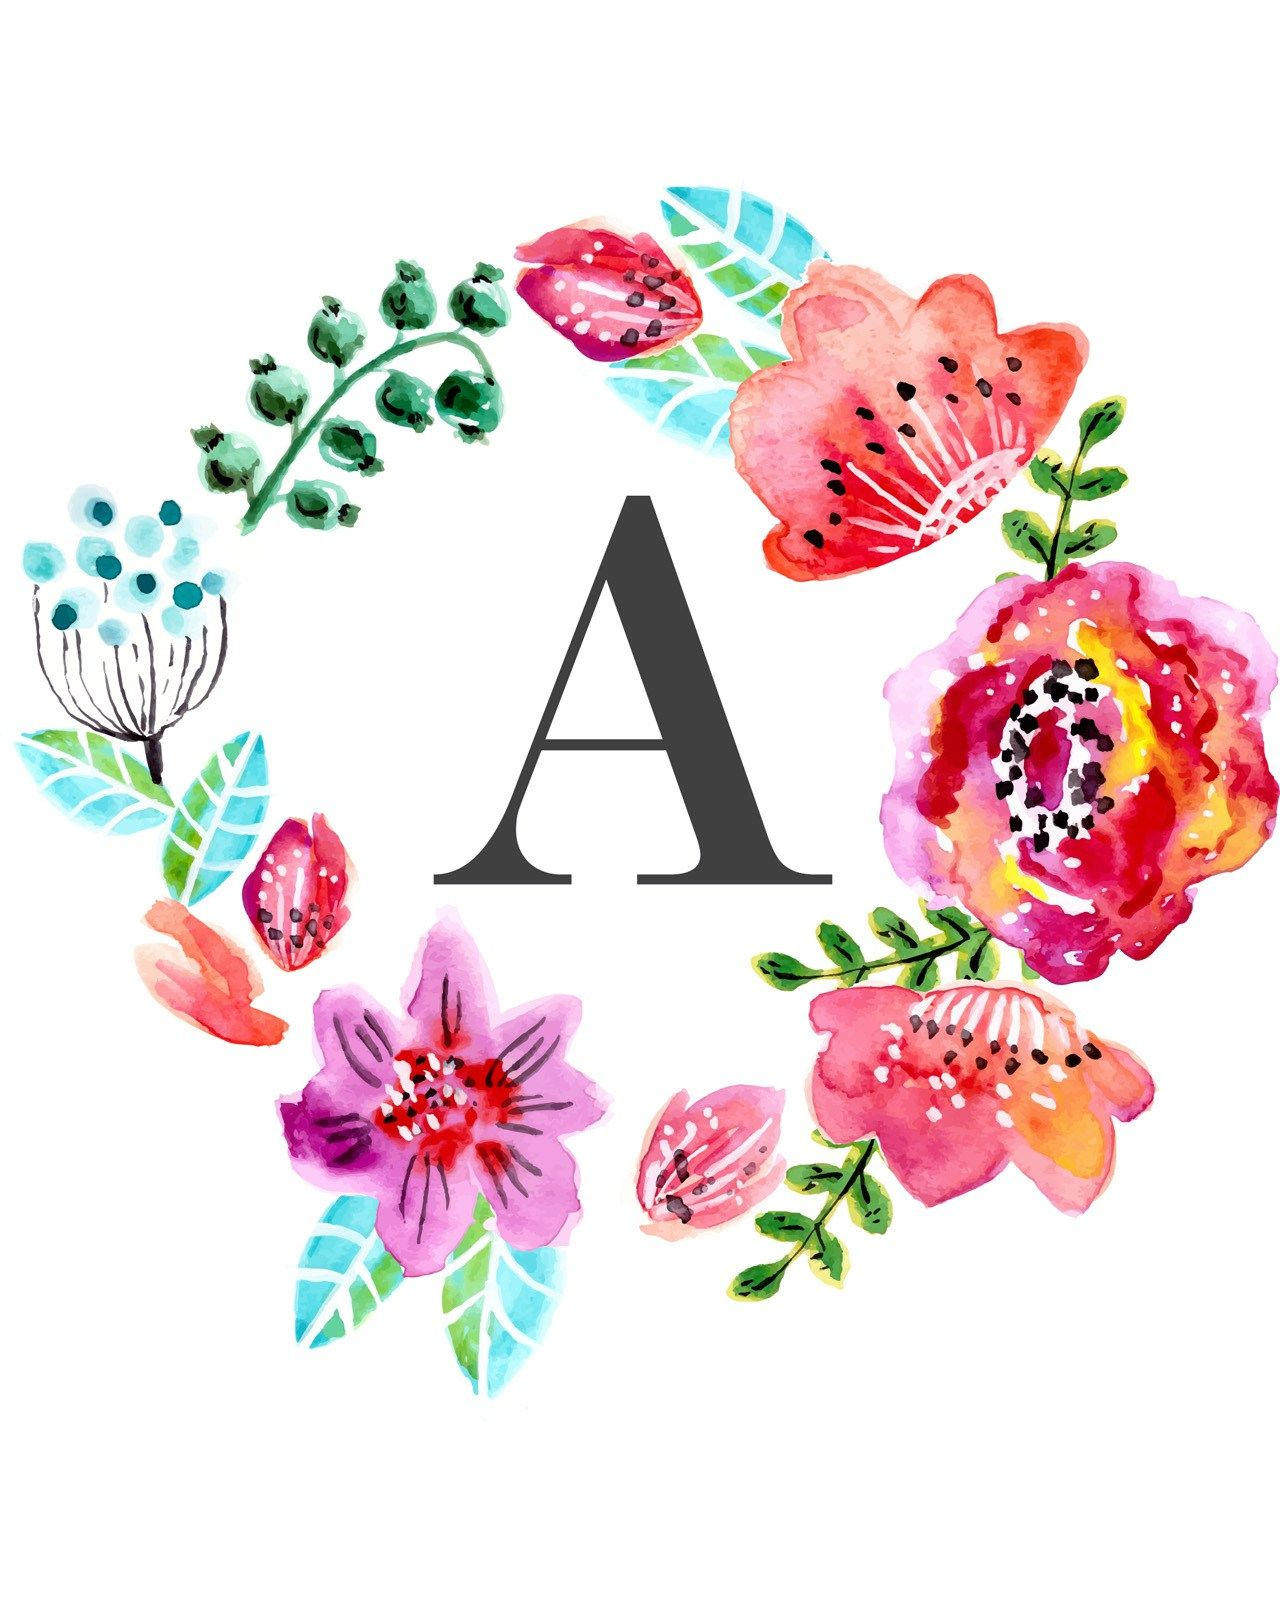 Custom Floral Monogram Wall Art   Free Nursery Printables For Girls Nursery  Decor Inspiration Or For